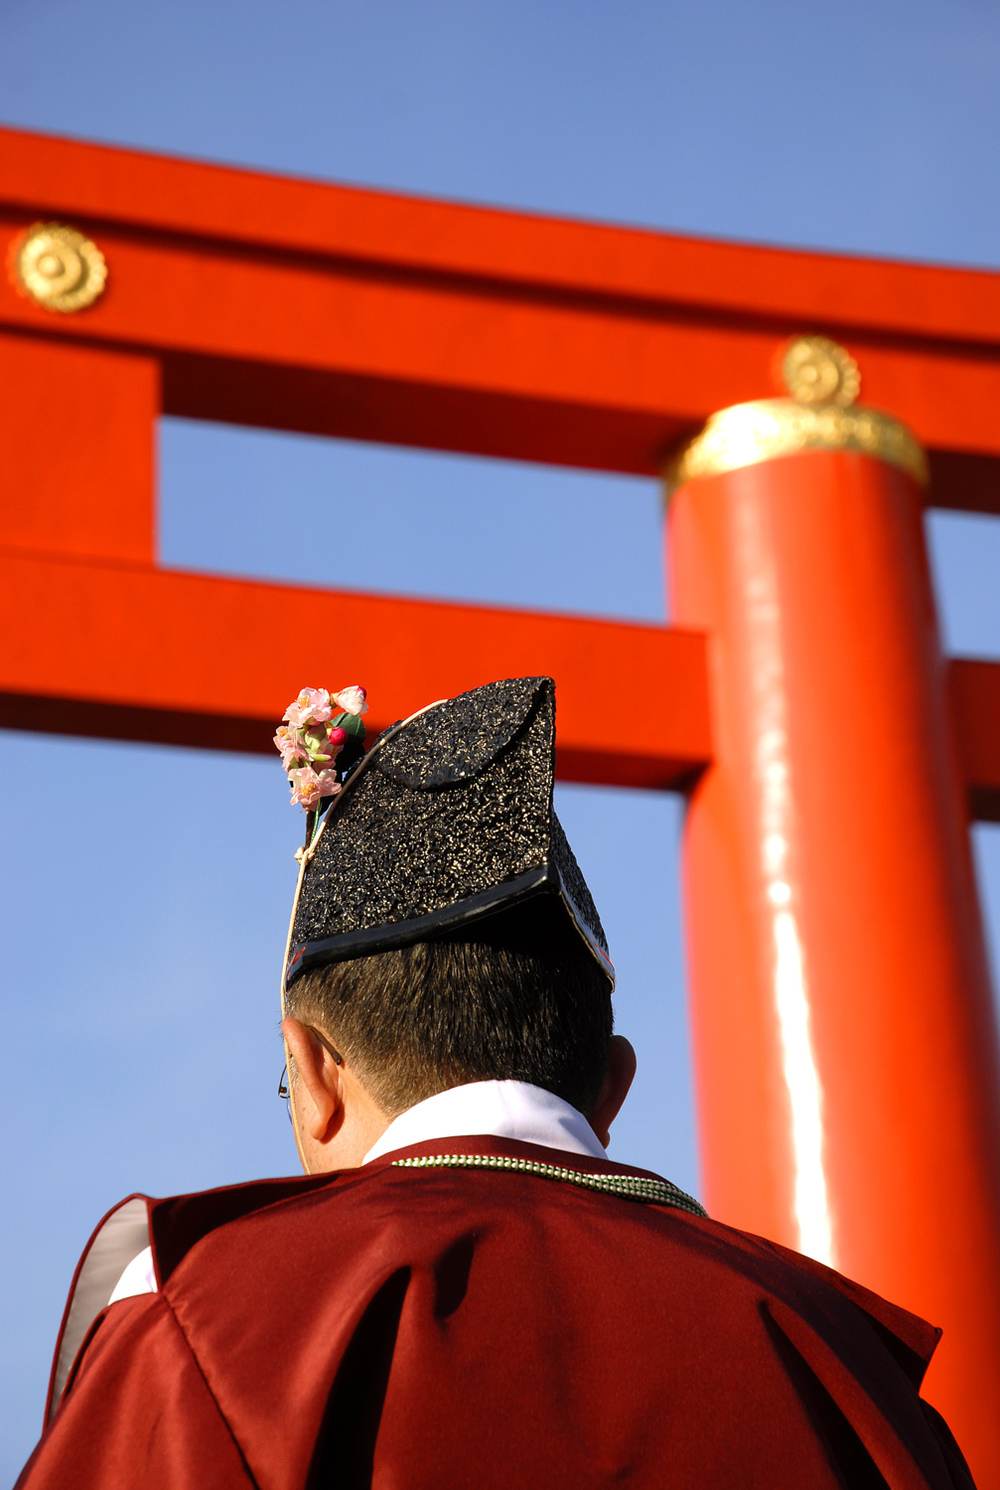 Monk and Heian Shrine torii gate at the Jidai Matsuri